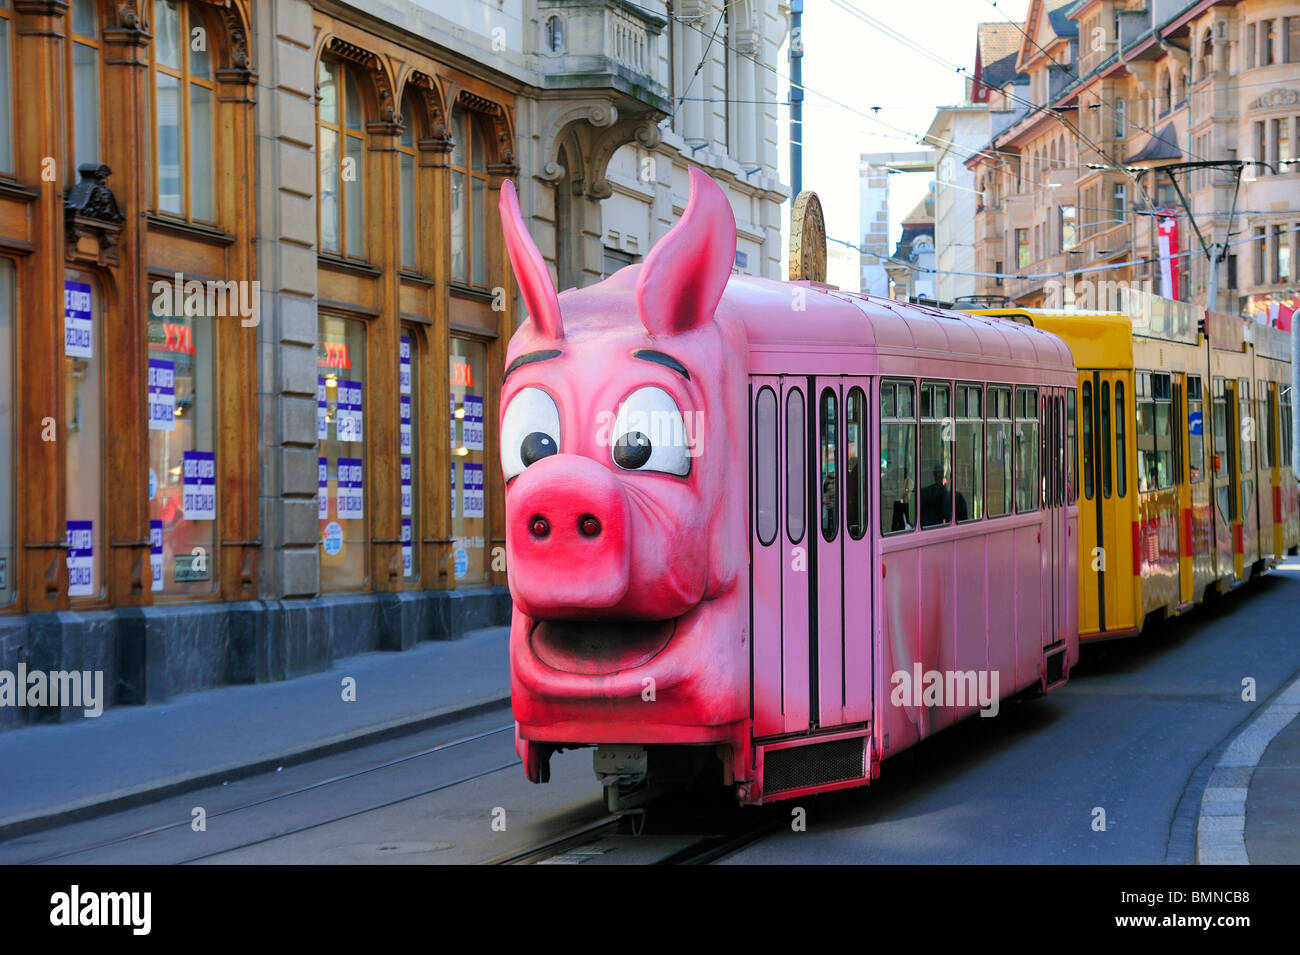 Swiss humour - a pig-shaped tram in Basel (Bale), Switzerland - Stock Image